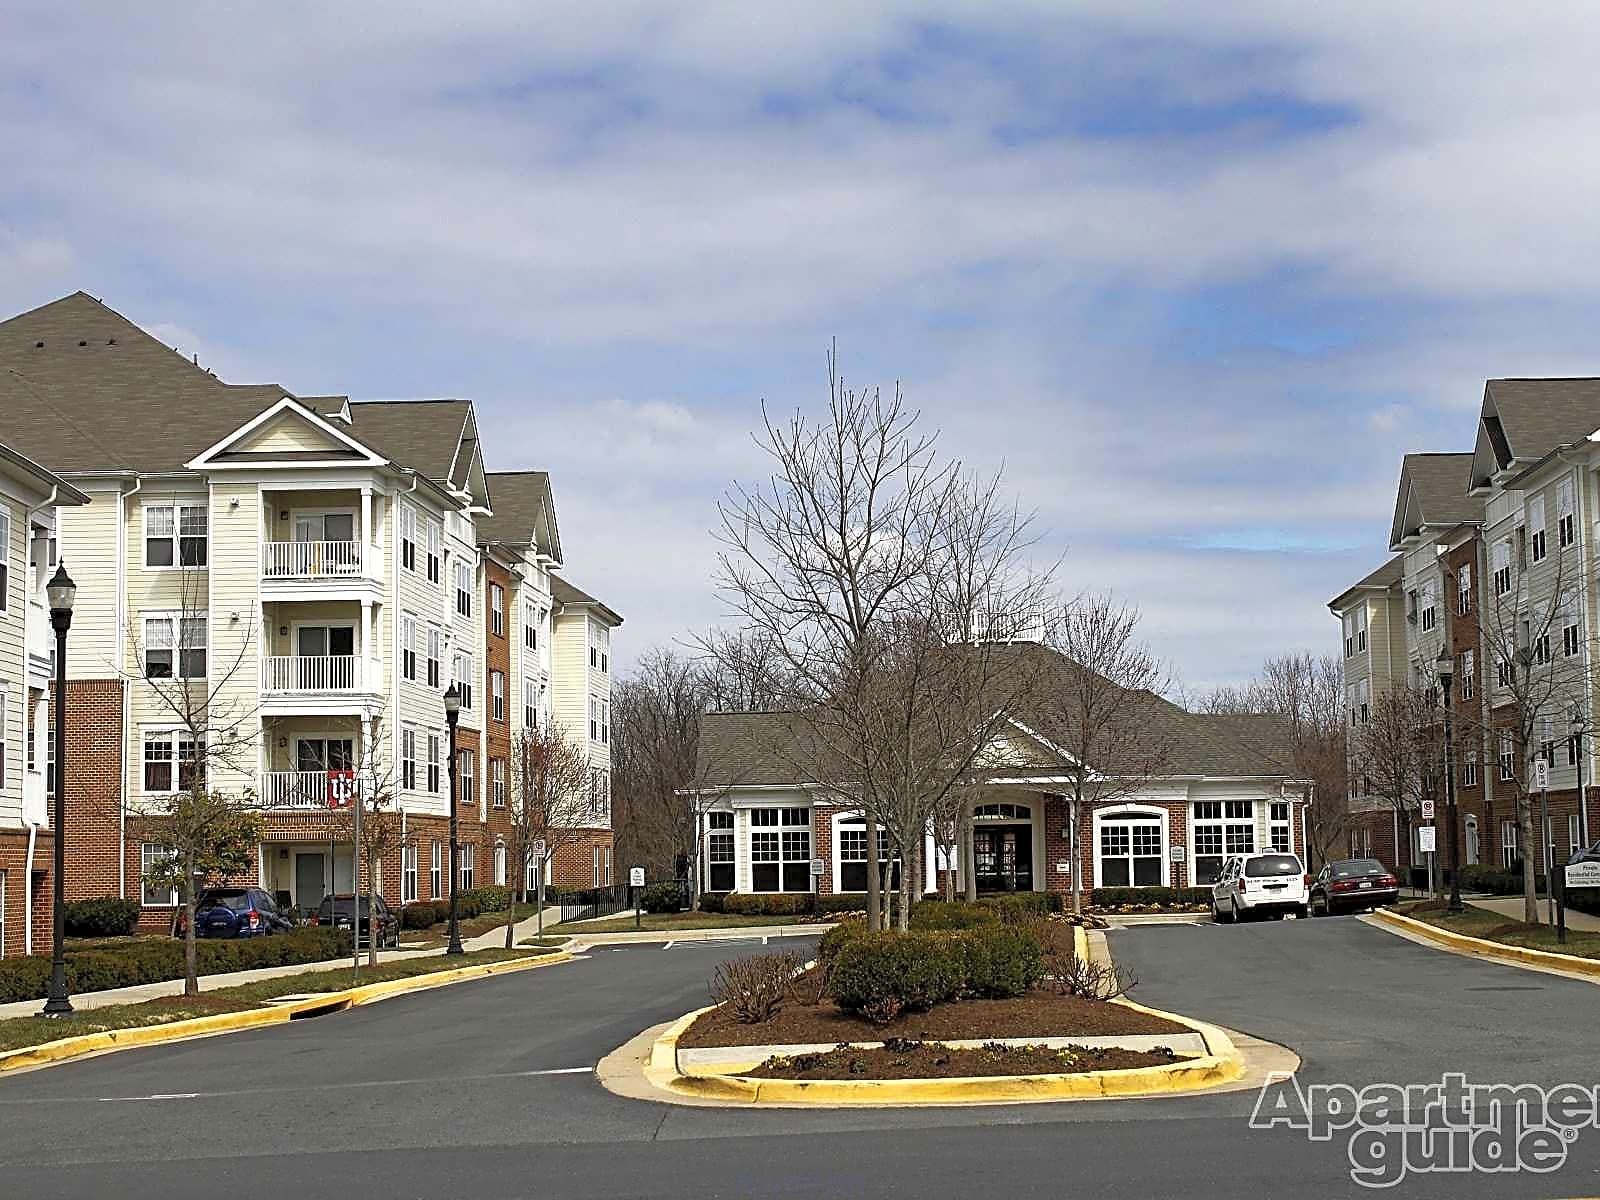 apartments and houses for rent near me in montgomery village